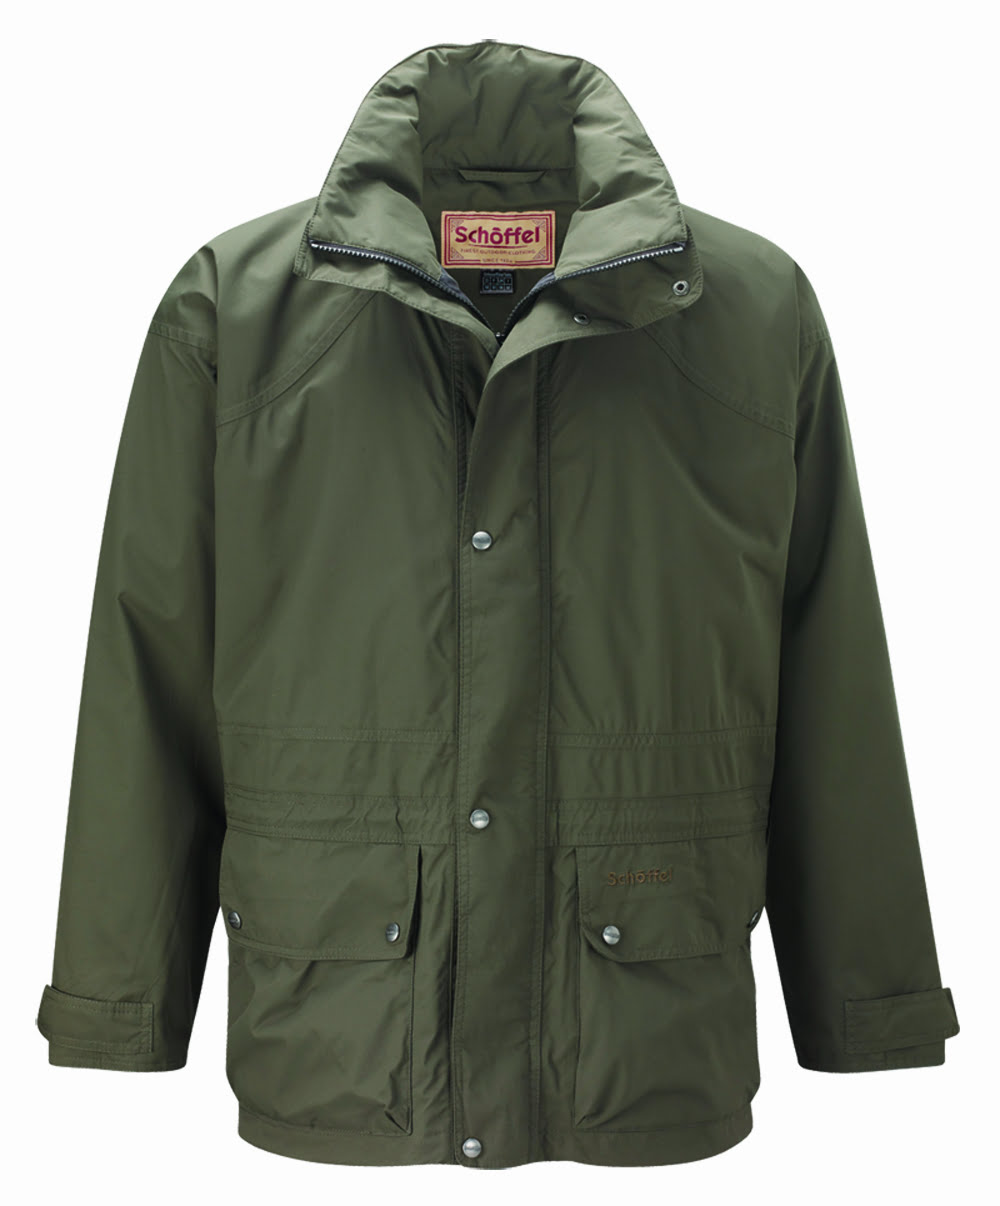 Schoffel Unisex Ketton Packaway Jacket